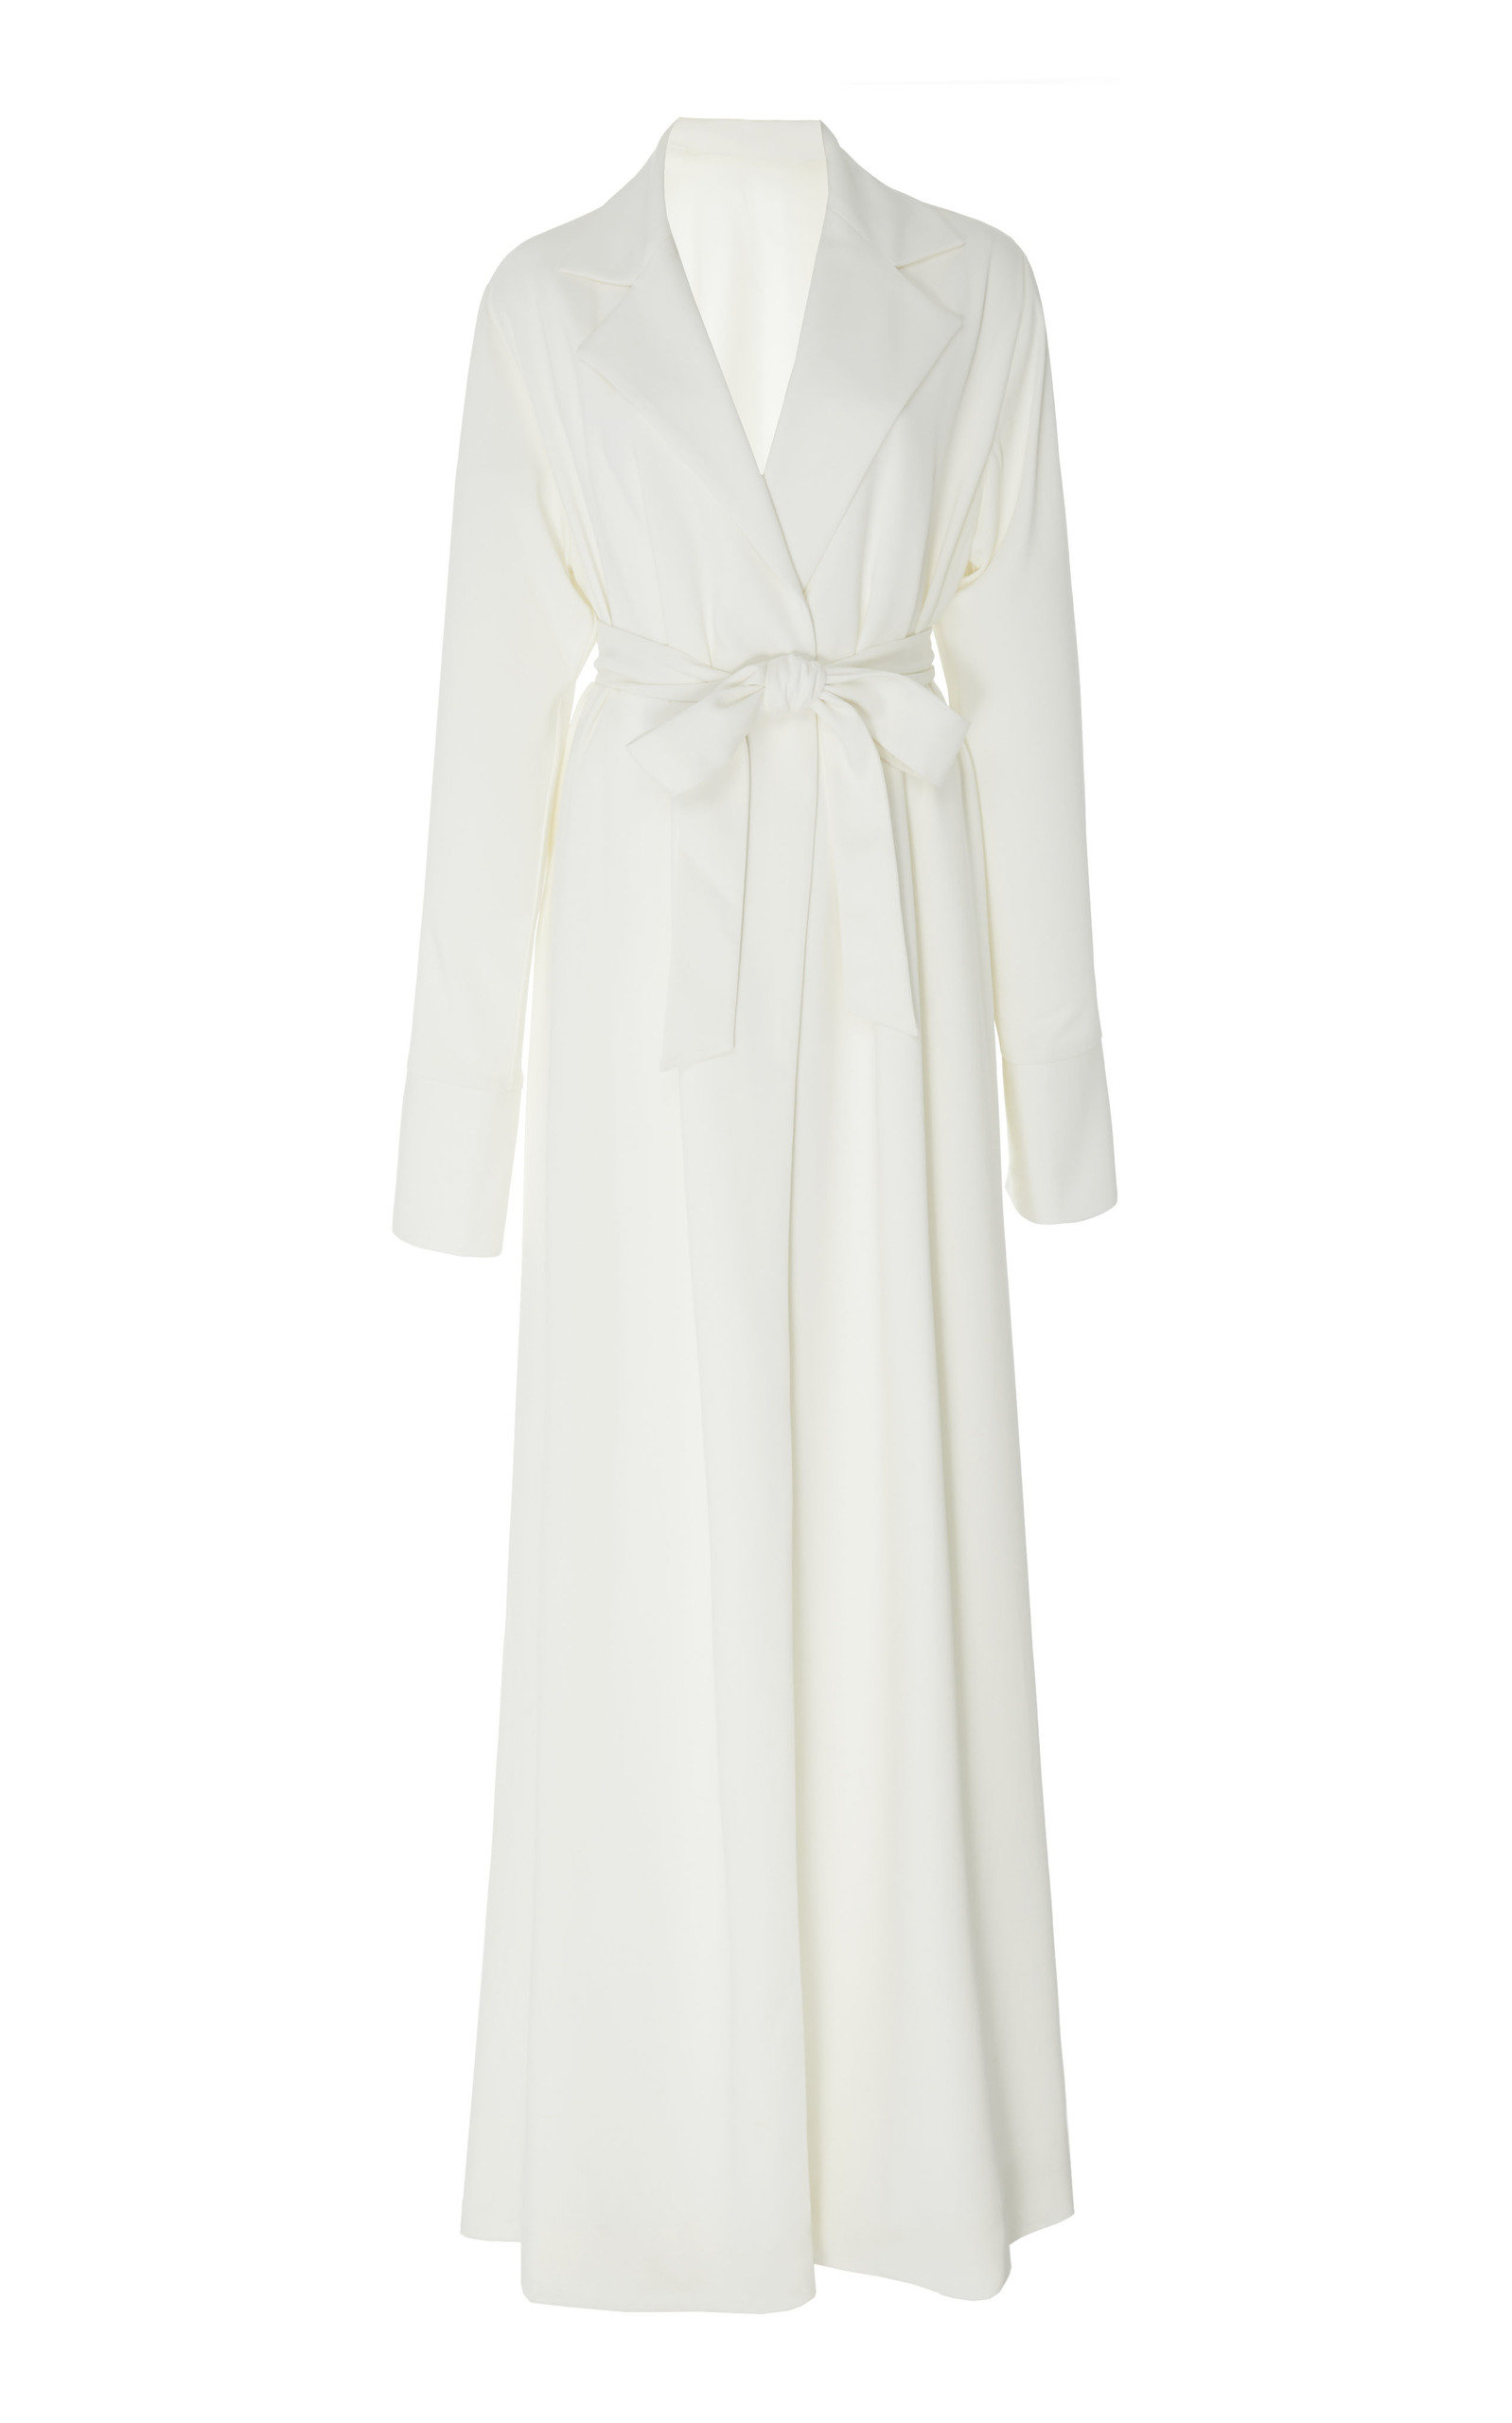 BOUGUESSA Crepe Belted Robe Dress in Ivory